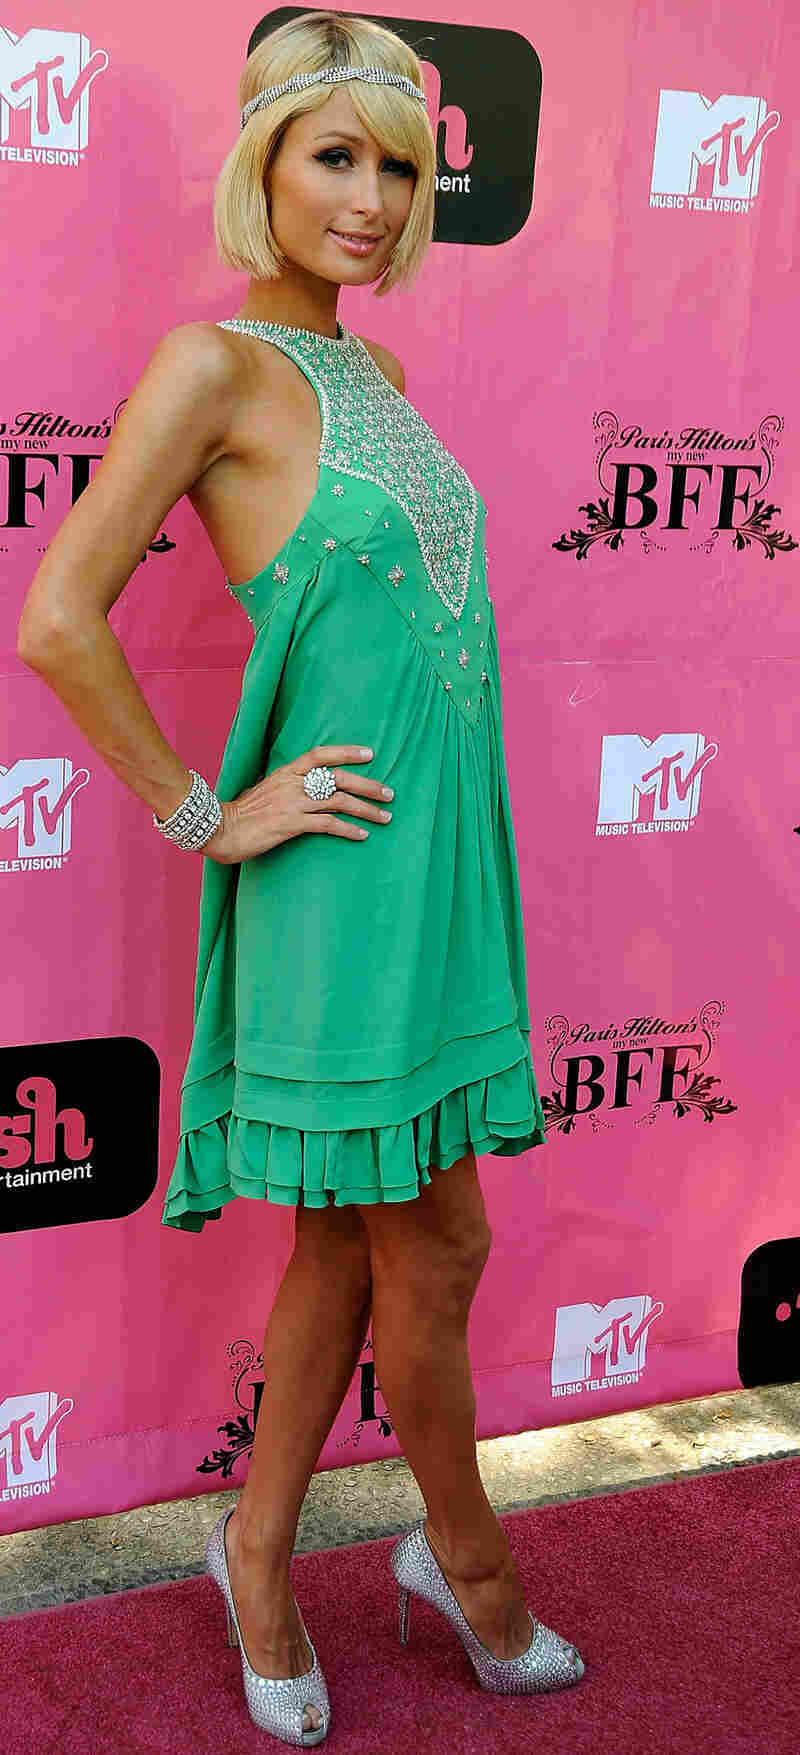 Paris Hilton is famous, in part for her 'My New BFF' TV show.